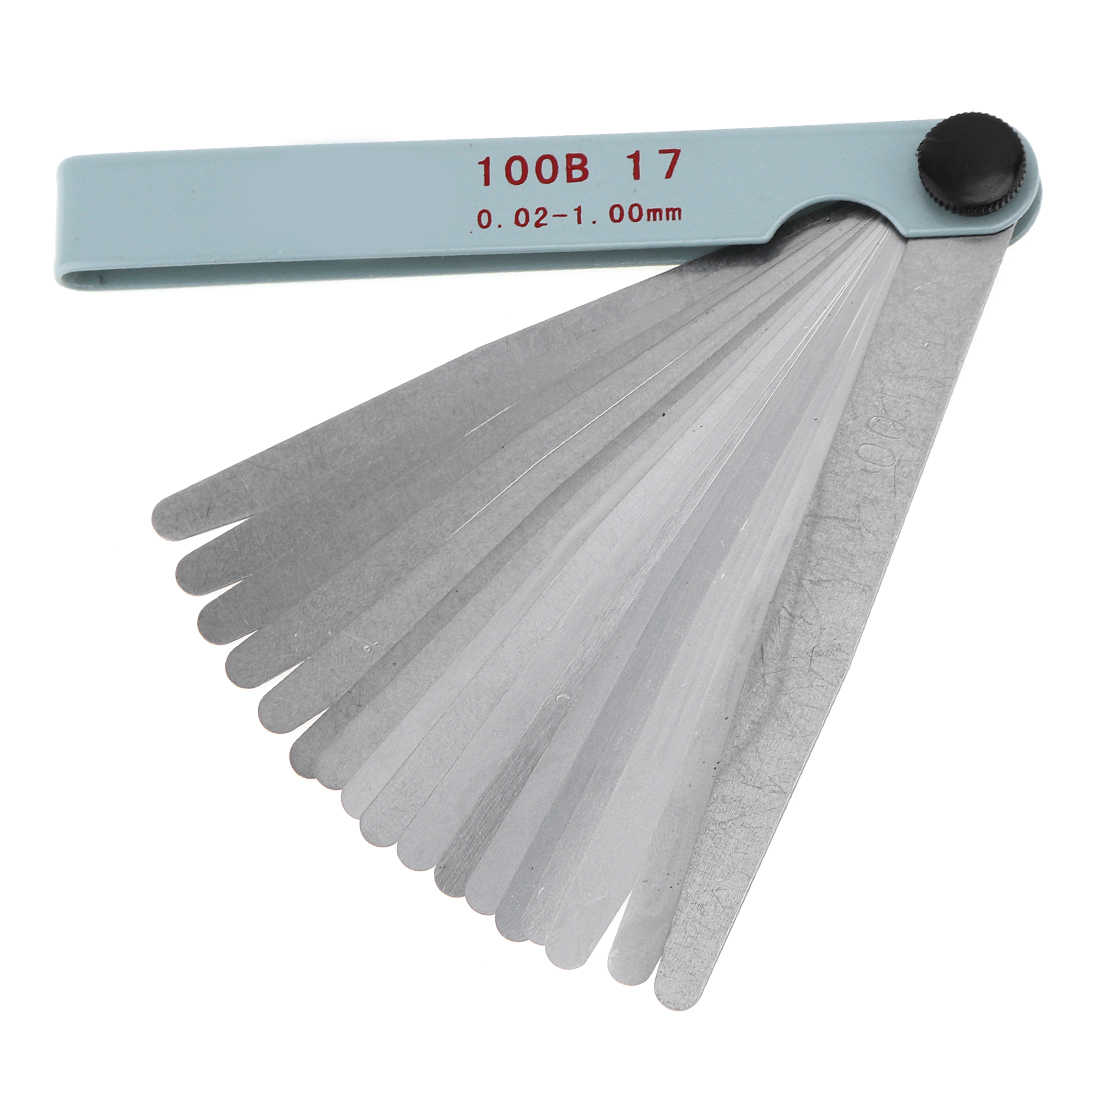 Portable Feeler Gauge 100B 17 Blade Stainless Steel With Adjustable Nut And 0.02 - 1.00mm Measuring Range Measuring Tools